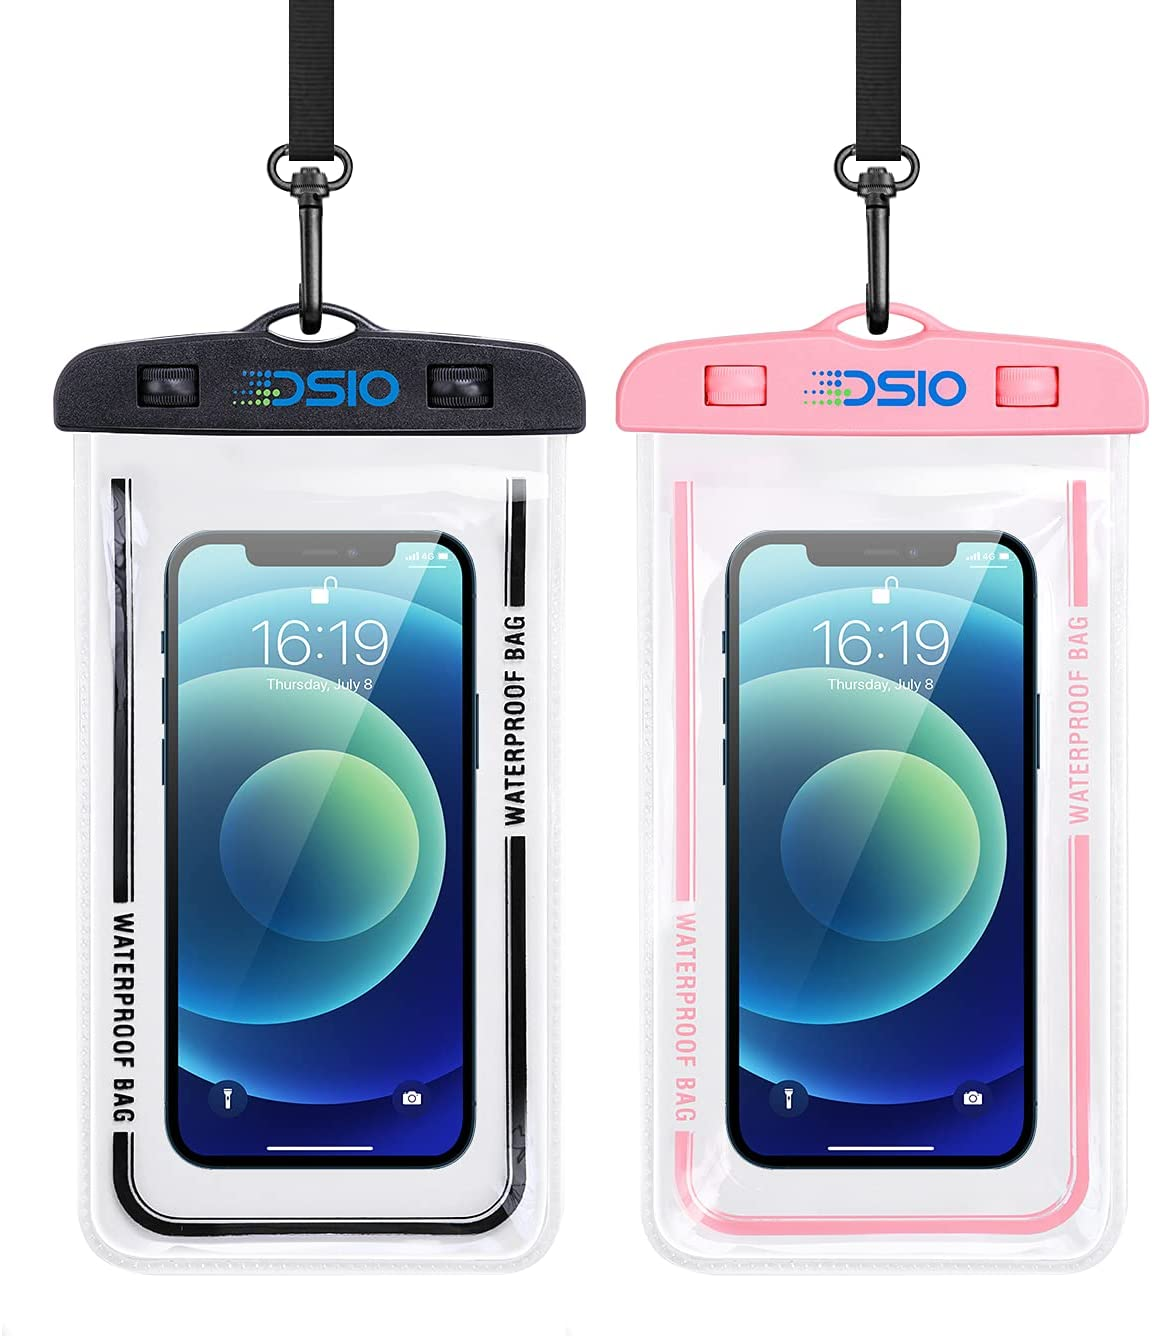 """Waterproof Phone Case,2PCS IPX8 Waterproof Phone Pouch with Lanyard Compatible for iPhone 12 Pro 11 Pro Samsung Galaxy s10/s9,Pixel 4 XL up to 7"""" (Black+Pink)"""